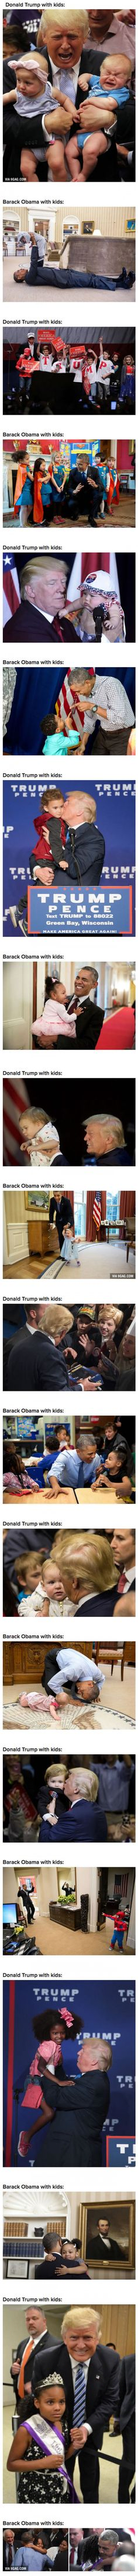 Trump With Kids Vs ObamaWith Kids